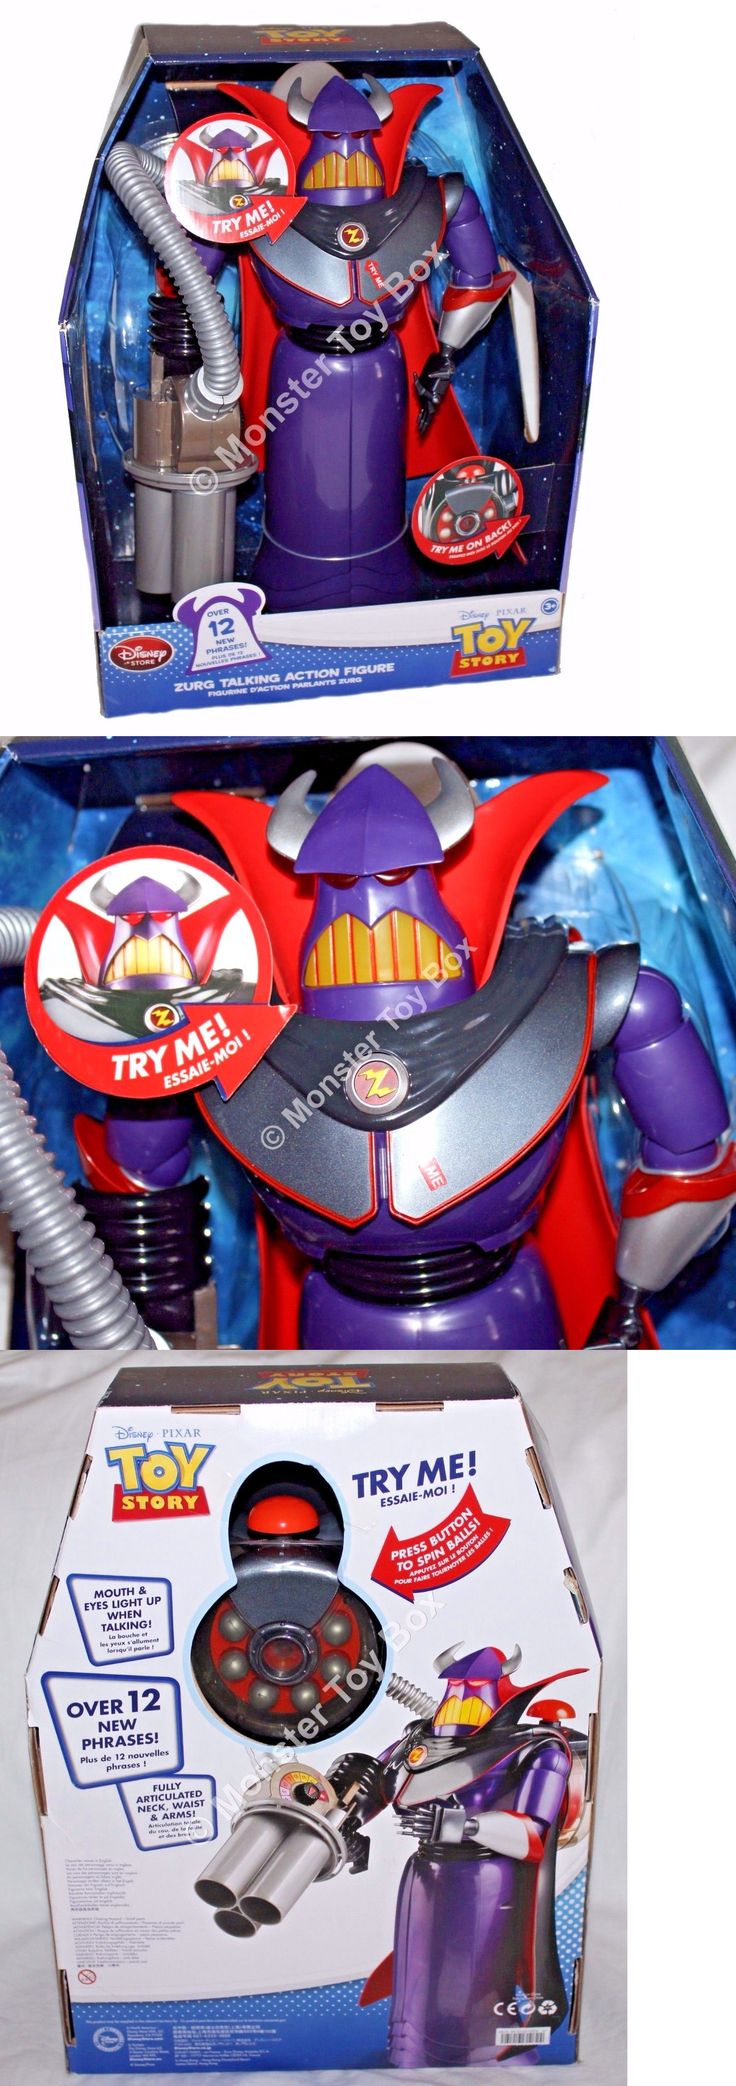 Toy Story 19223: Talking Zurg Action Figure Toy Story Pixar Disney Store Authentic Us Seller -> BUY IT NOW ONLY: $49.6 on eBay!